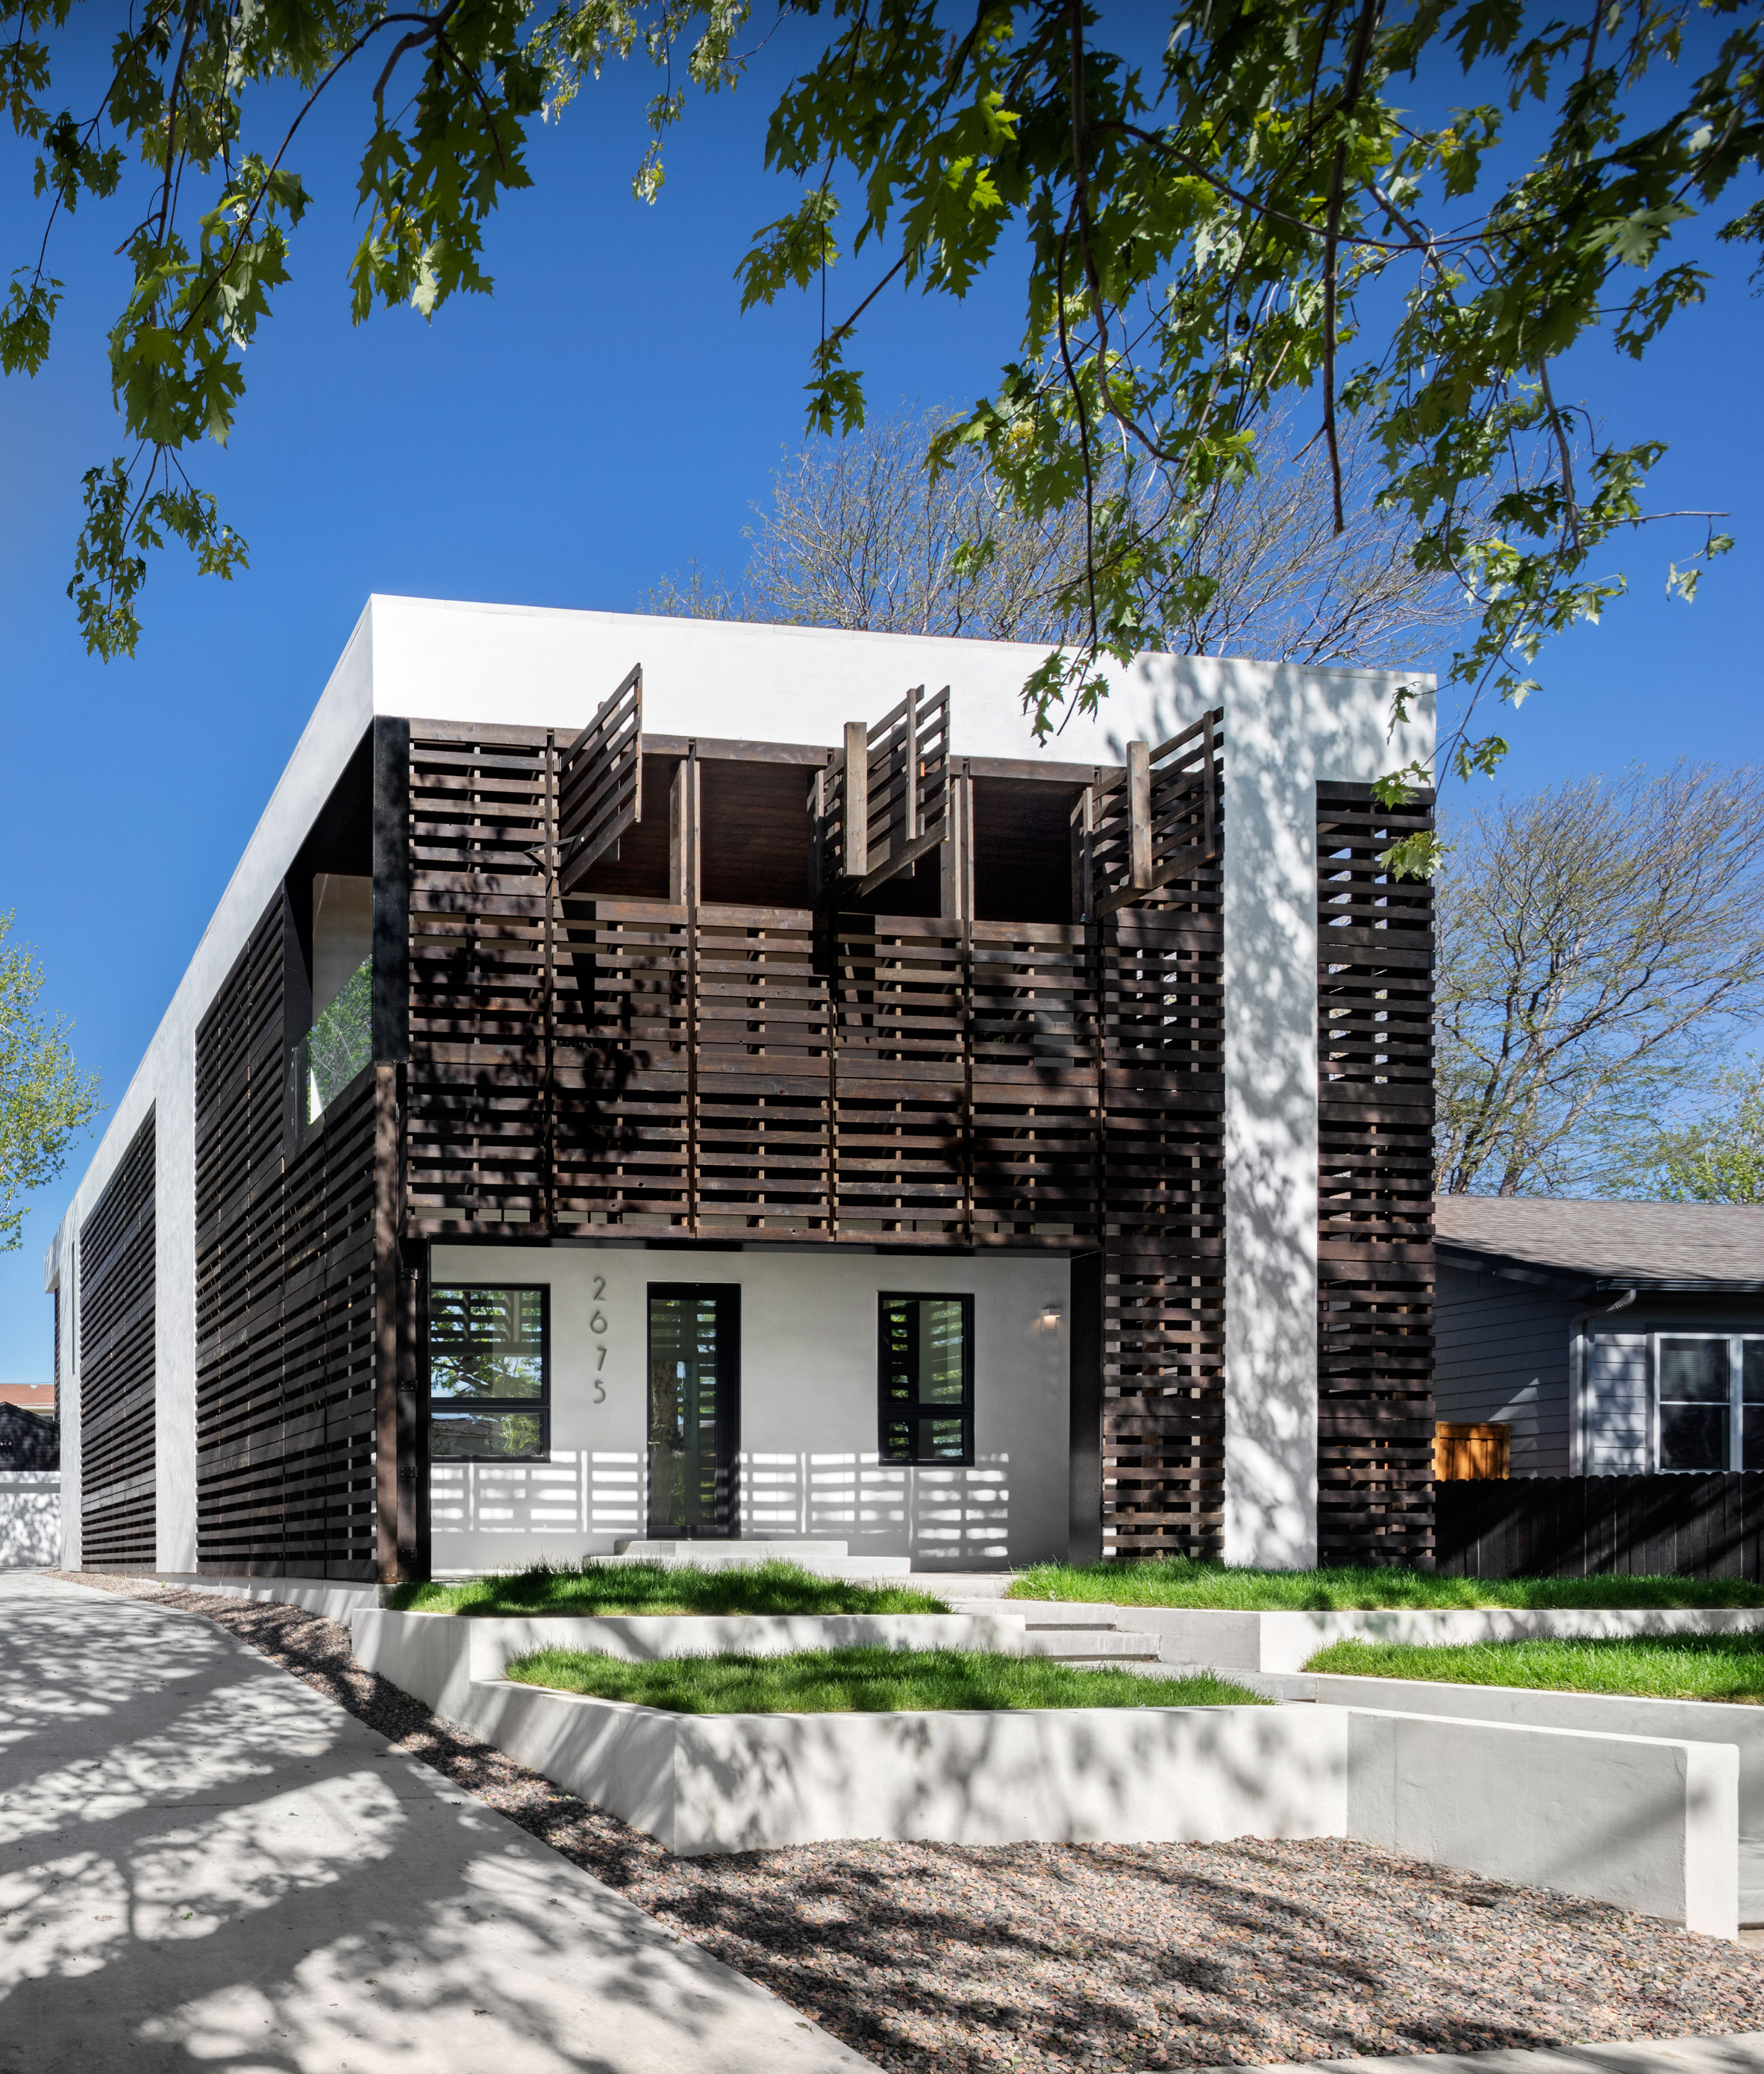 Meridian 105′s Denver house features screens and shutters made of black wooden pallets